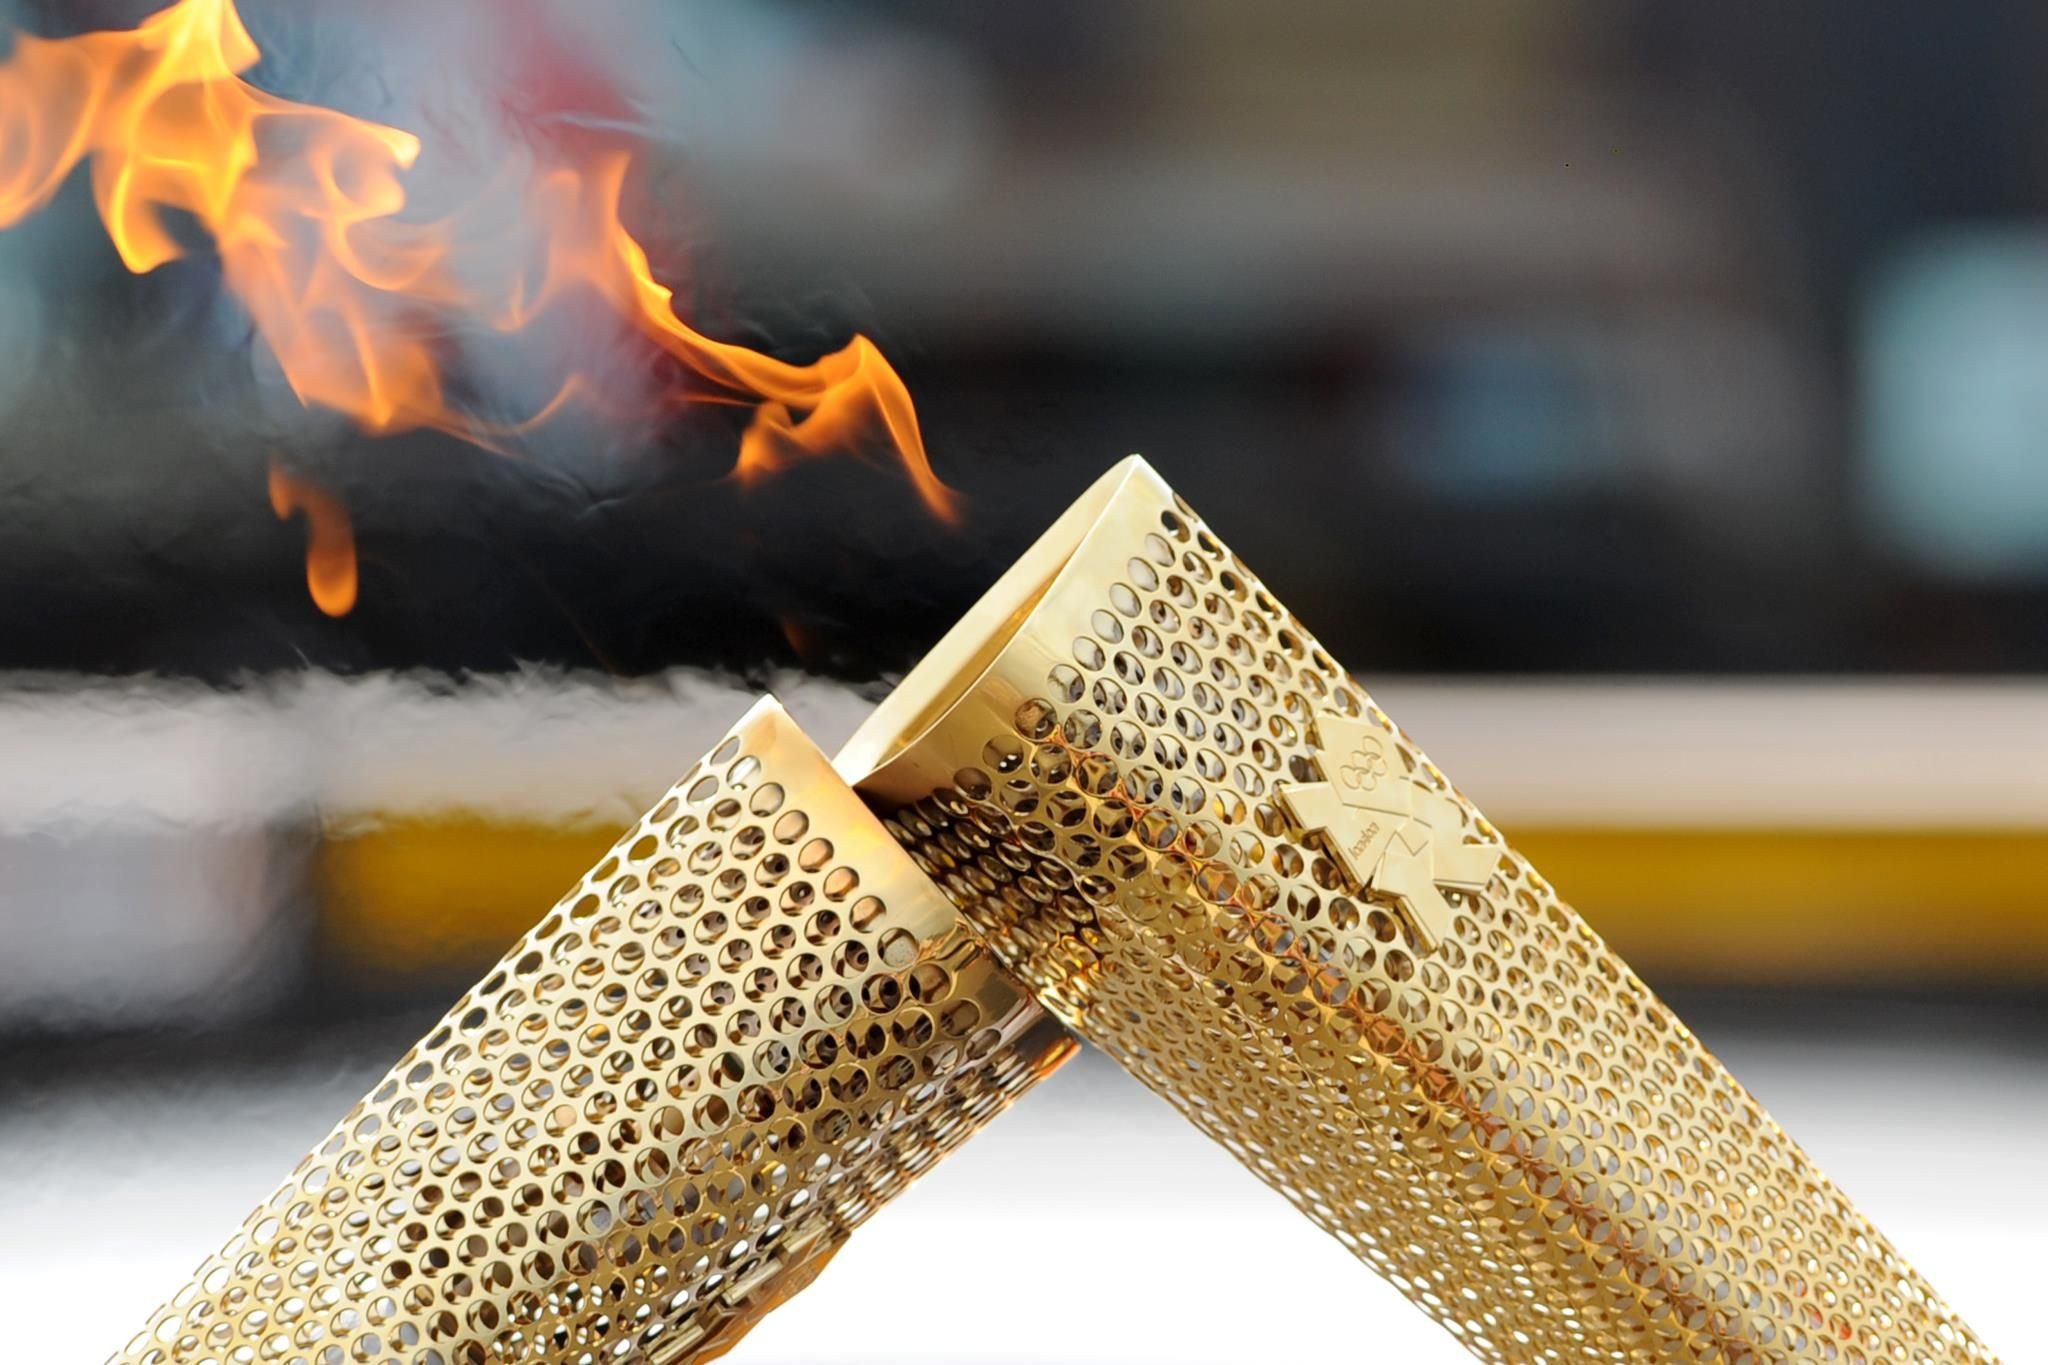 London 2012 Torch manufacturer forced out of business by coronavirus